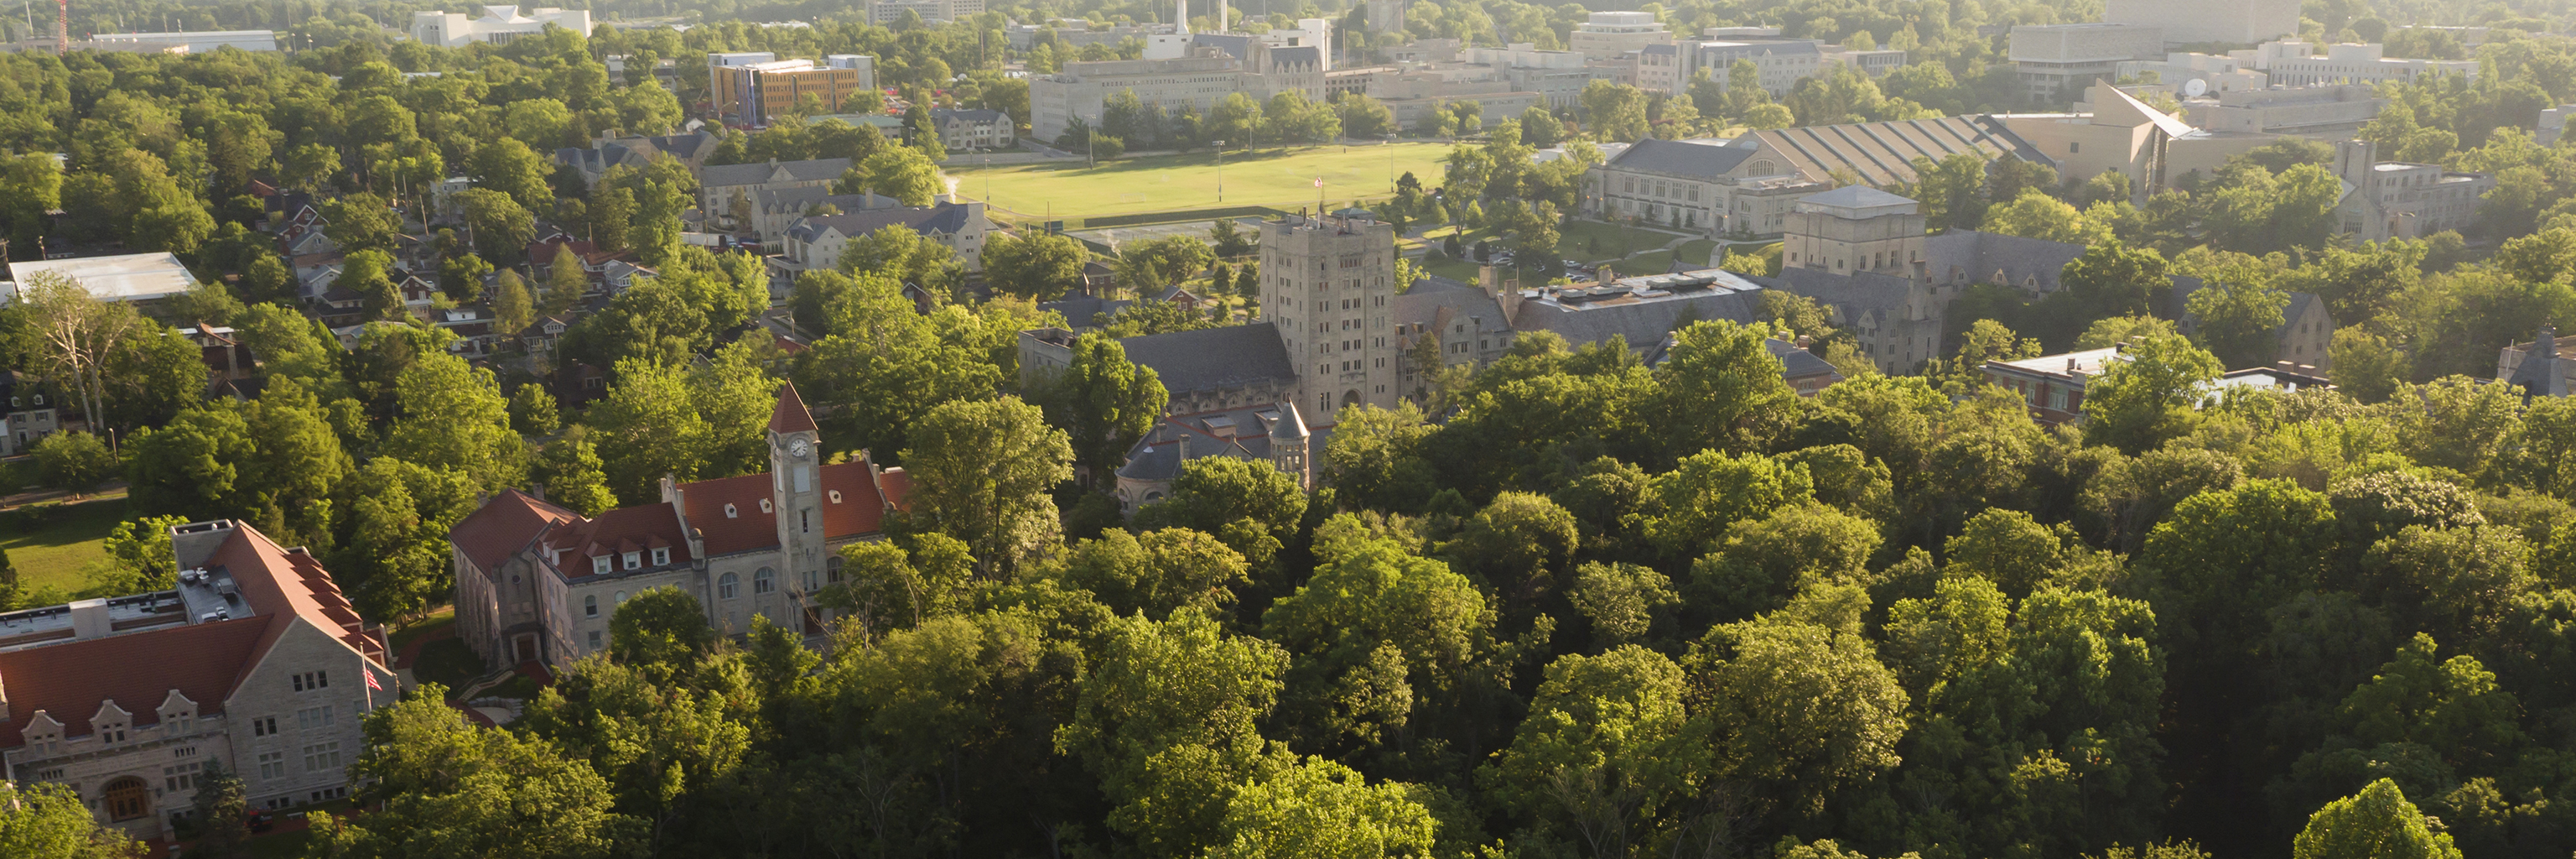 Aerial view of the forested Indiana University Bloomington campus.